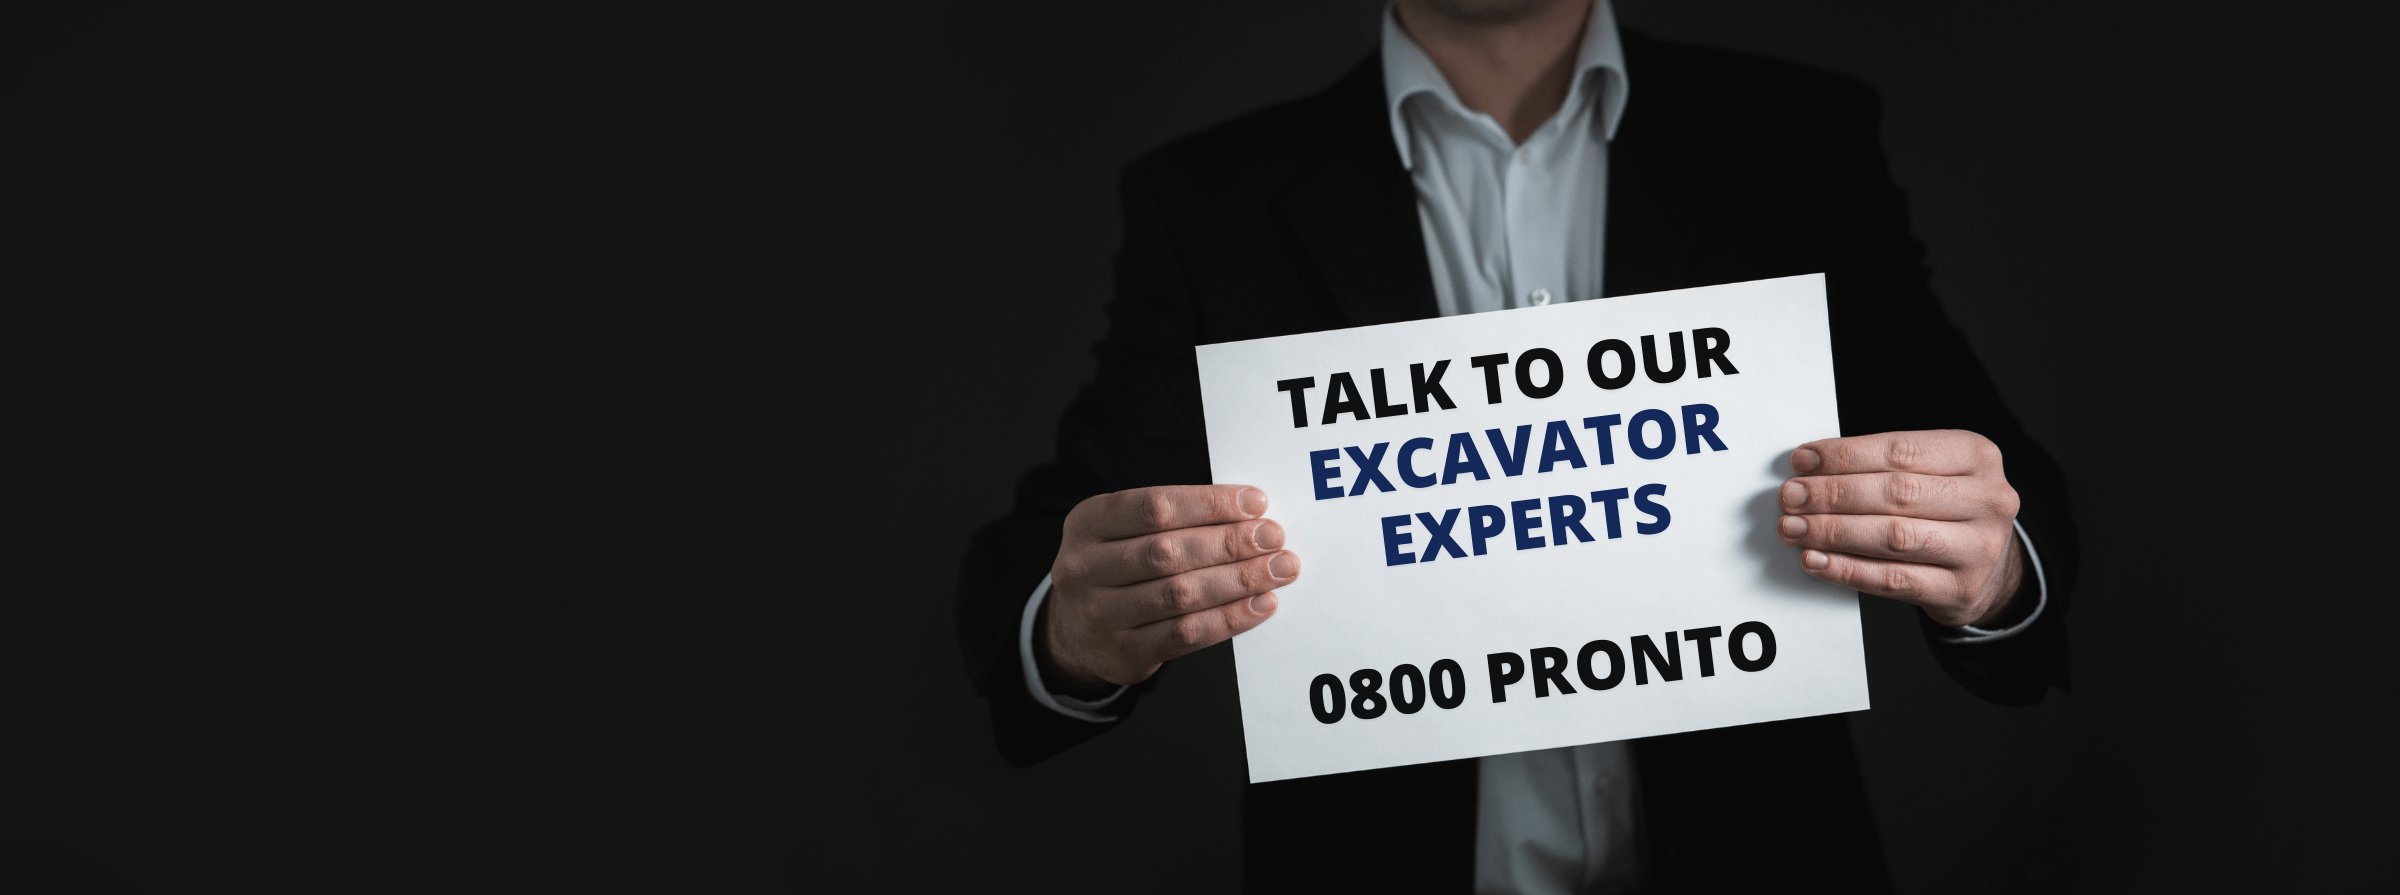 talk-to-our-excavator-experts